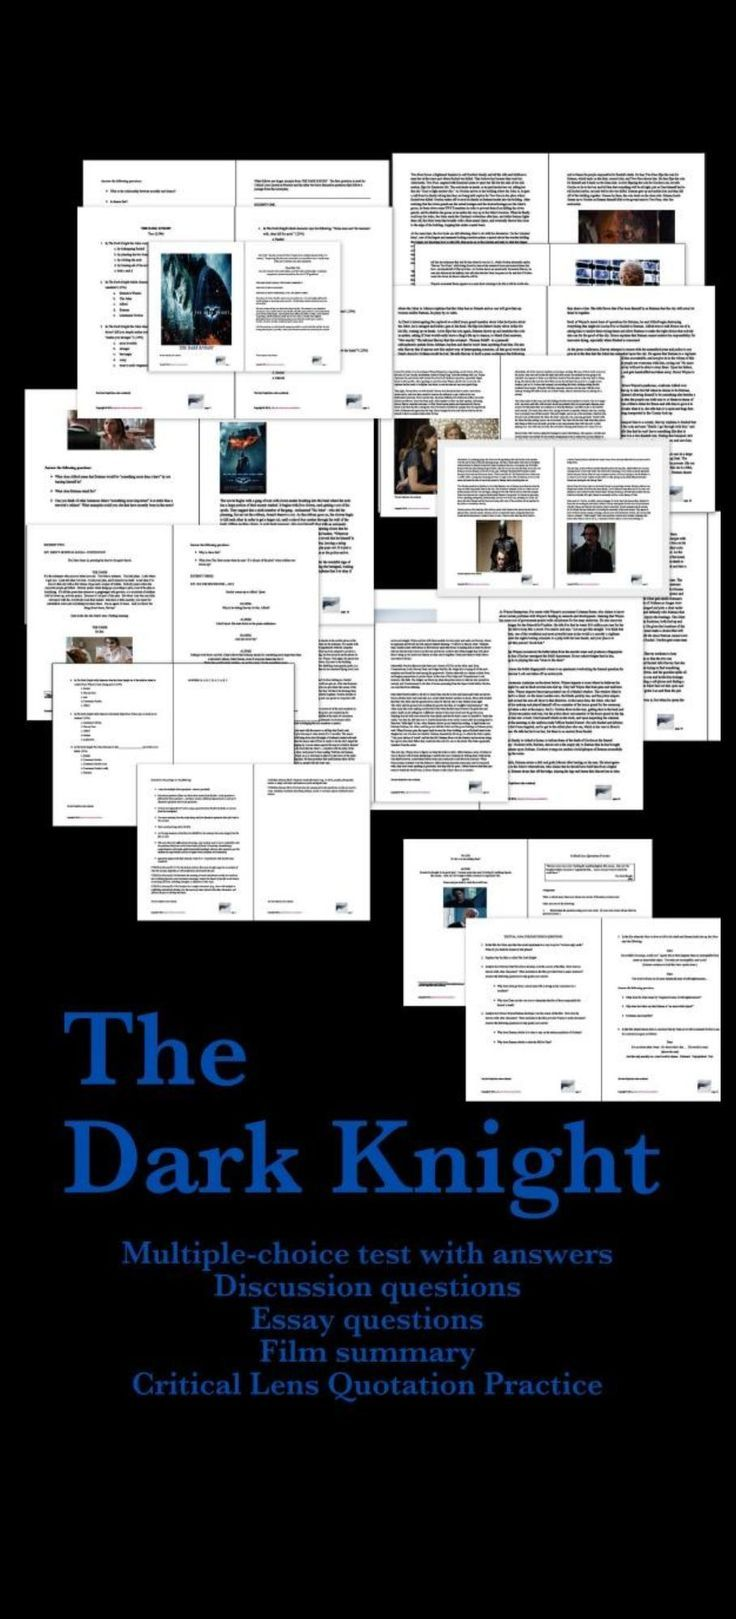 English Language Essays The Dark Knight  Pages Of Material A Test Essay Questions Discussion  Questions Film Summary And More  Business Management Essays also High School Essay Format Film  The Dark Knight Bundle Test Summary Script Excerpts  Christmas Essay In English